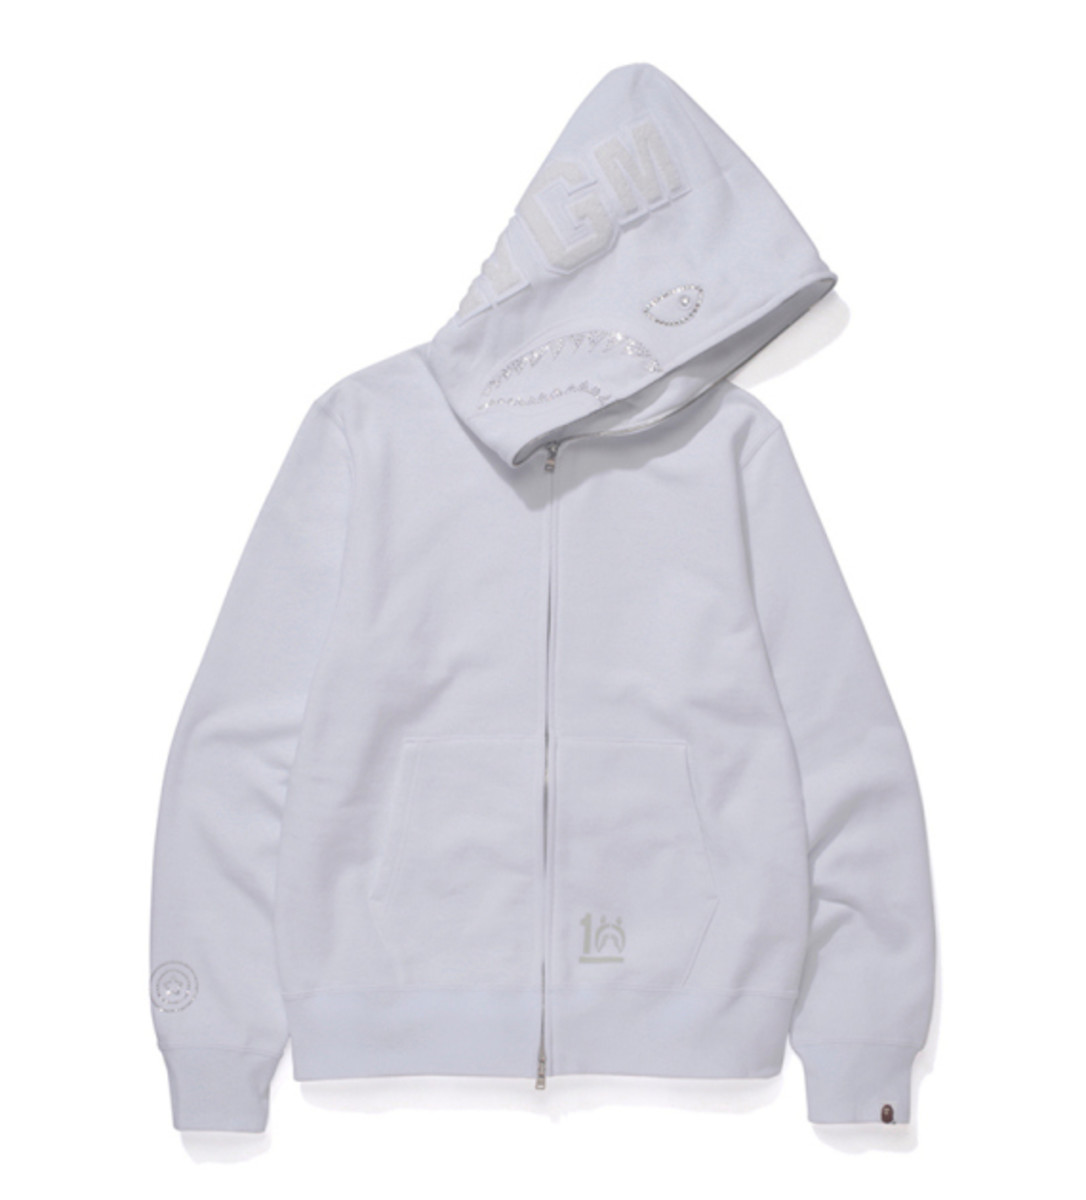 a-bathing-ape-shark-hoodie-10th-anniversary-collection-03